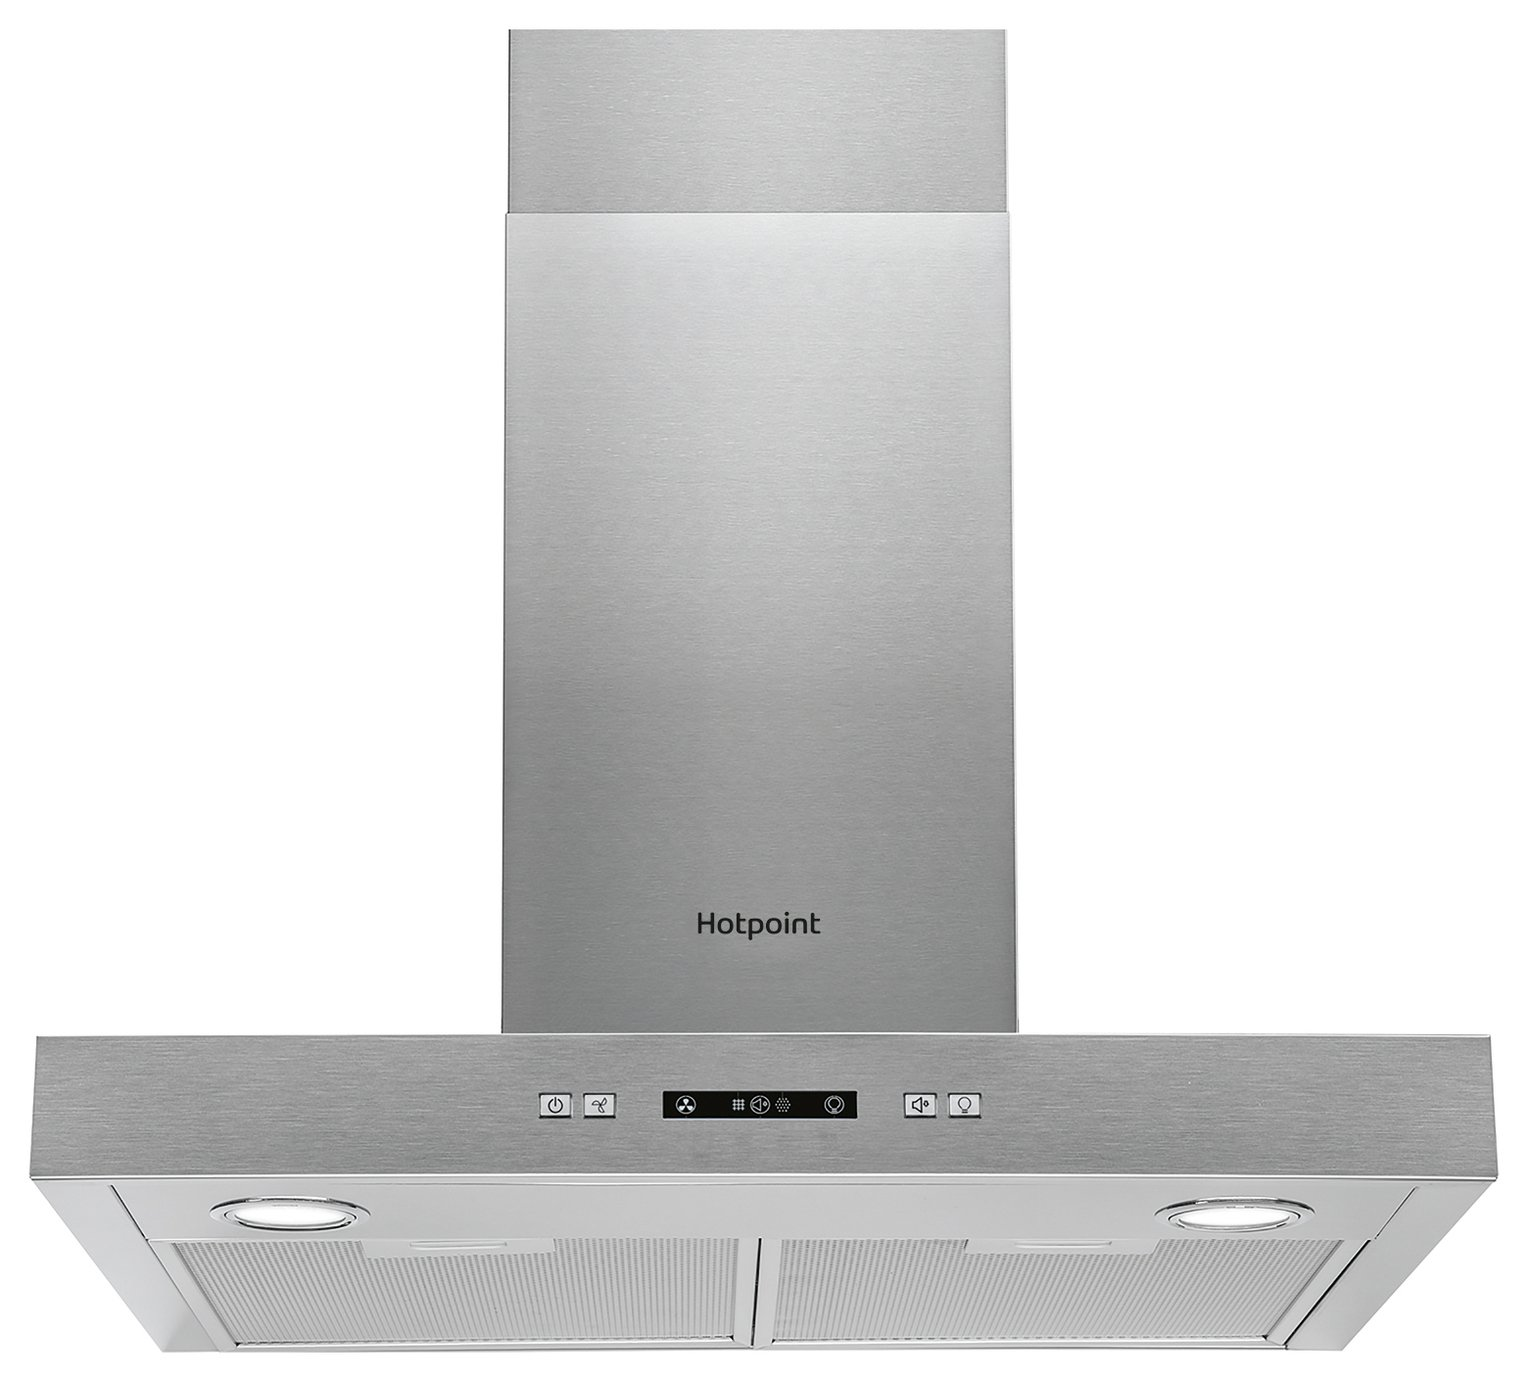 Hotpoint PHBS6.7FLLIX 60cm Cooker Hood - Stainless Steel